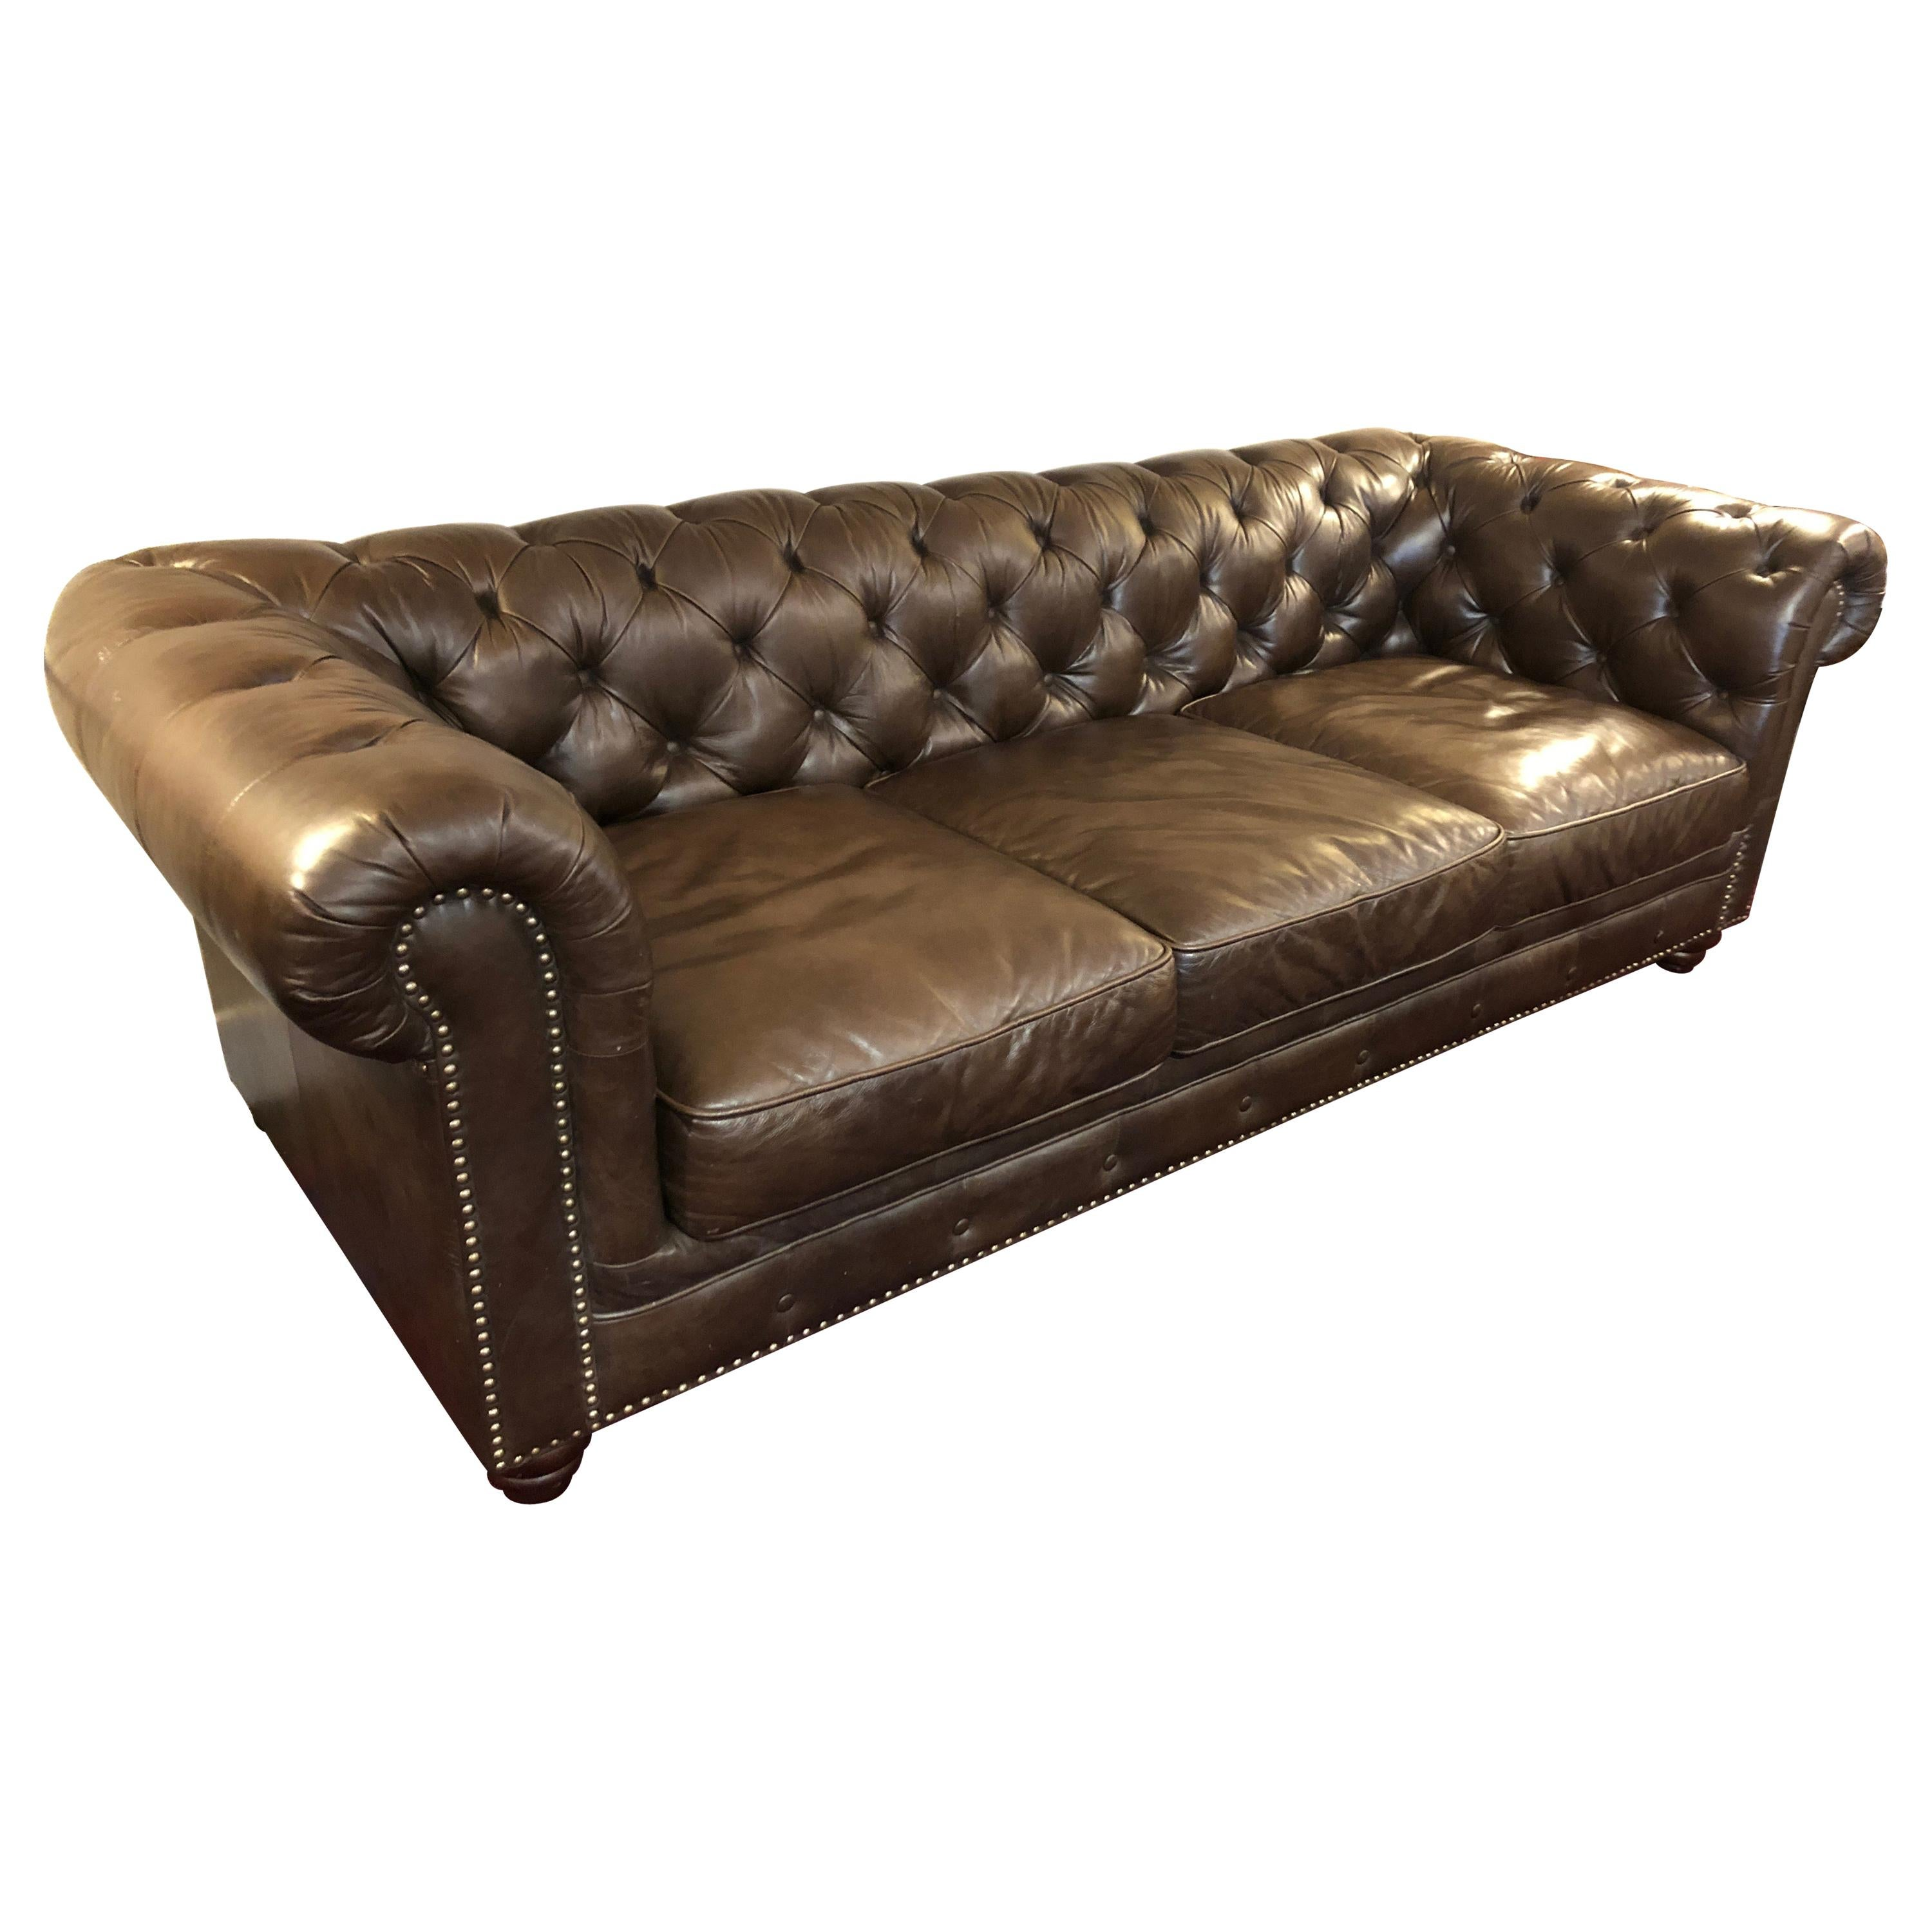 Astounding Supple Brown Leather Chesterfield Style Large Sofa Short Links Chair Design For Home Short Linksinfo